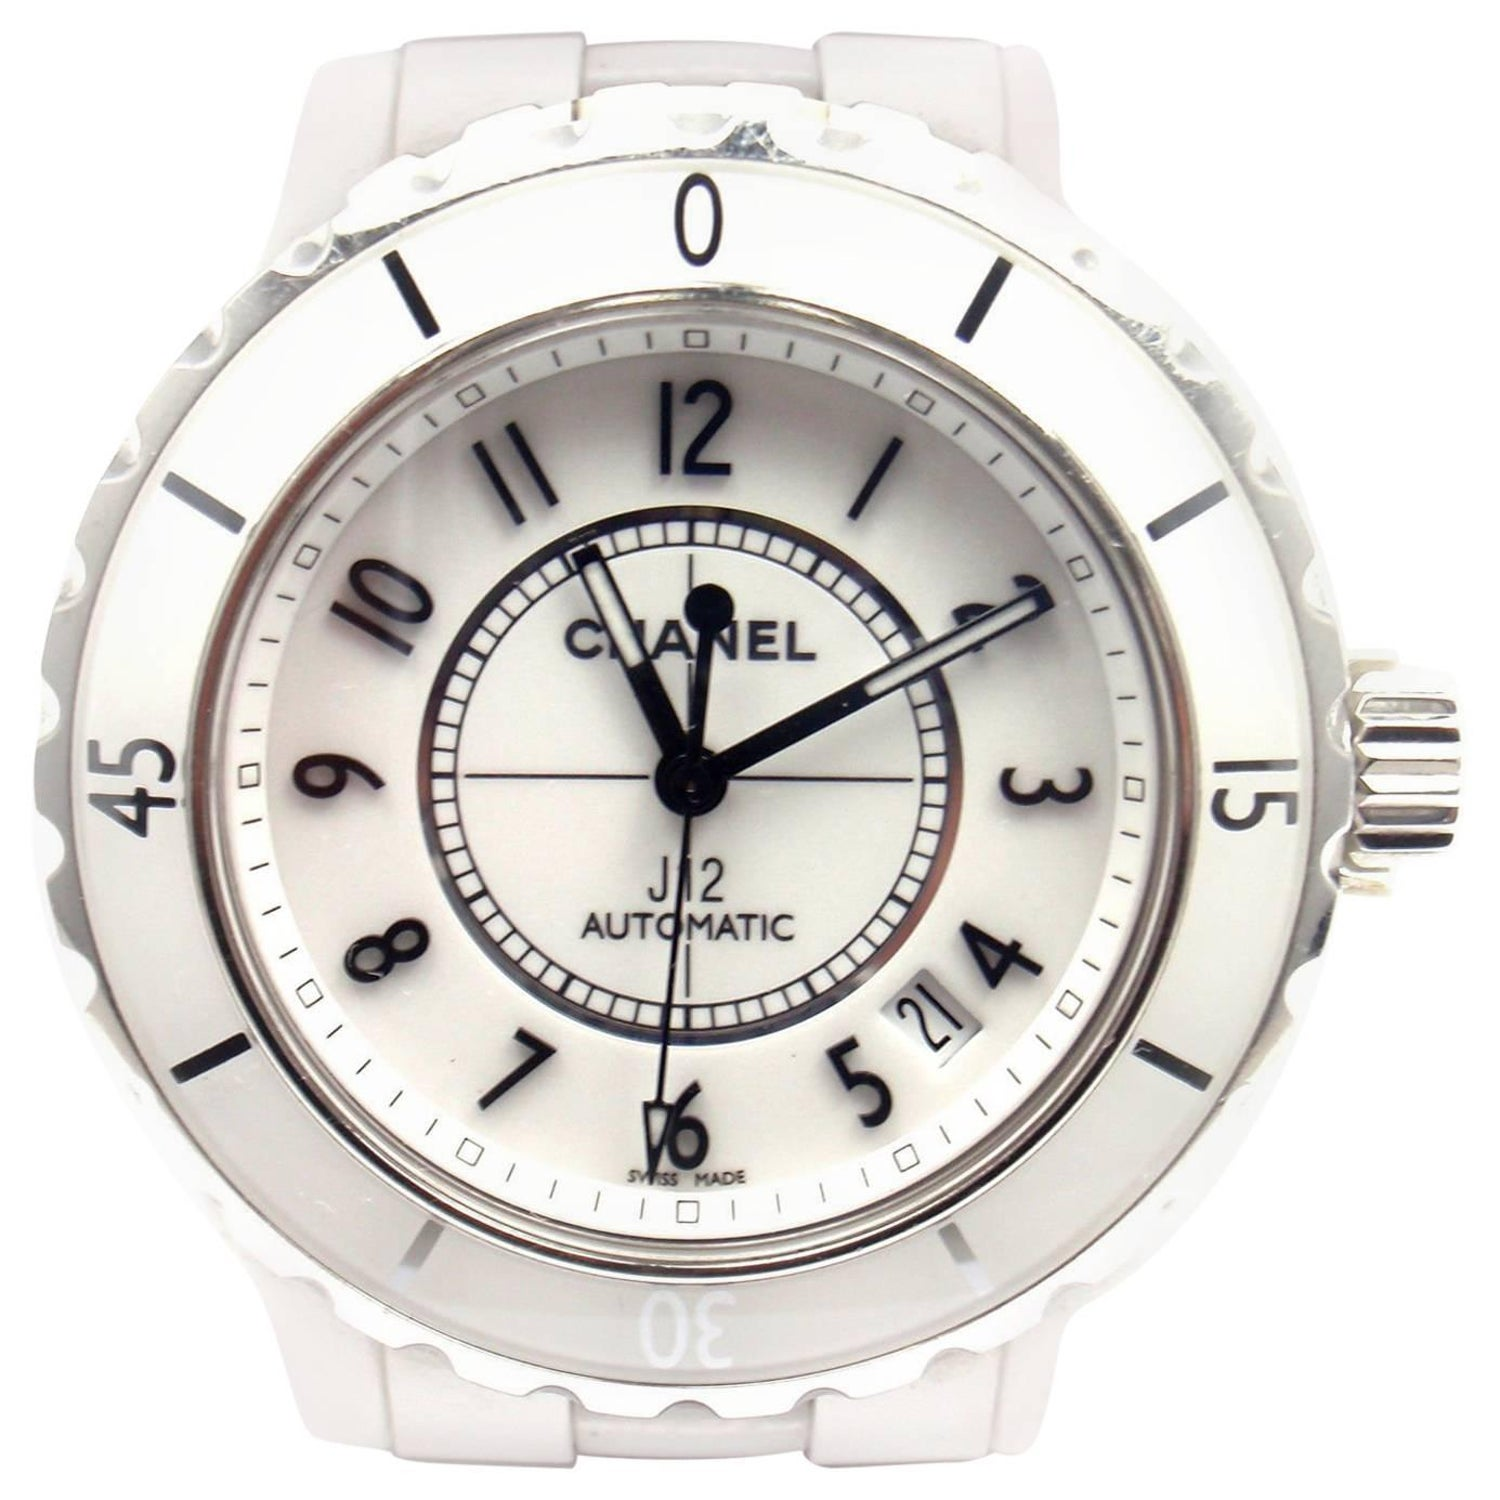 83f374eb8d2 Chanel Stainless Steel White Ceramic J12 Automatic Wristwatch Ref H0970 at  1stdibs